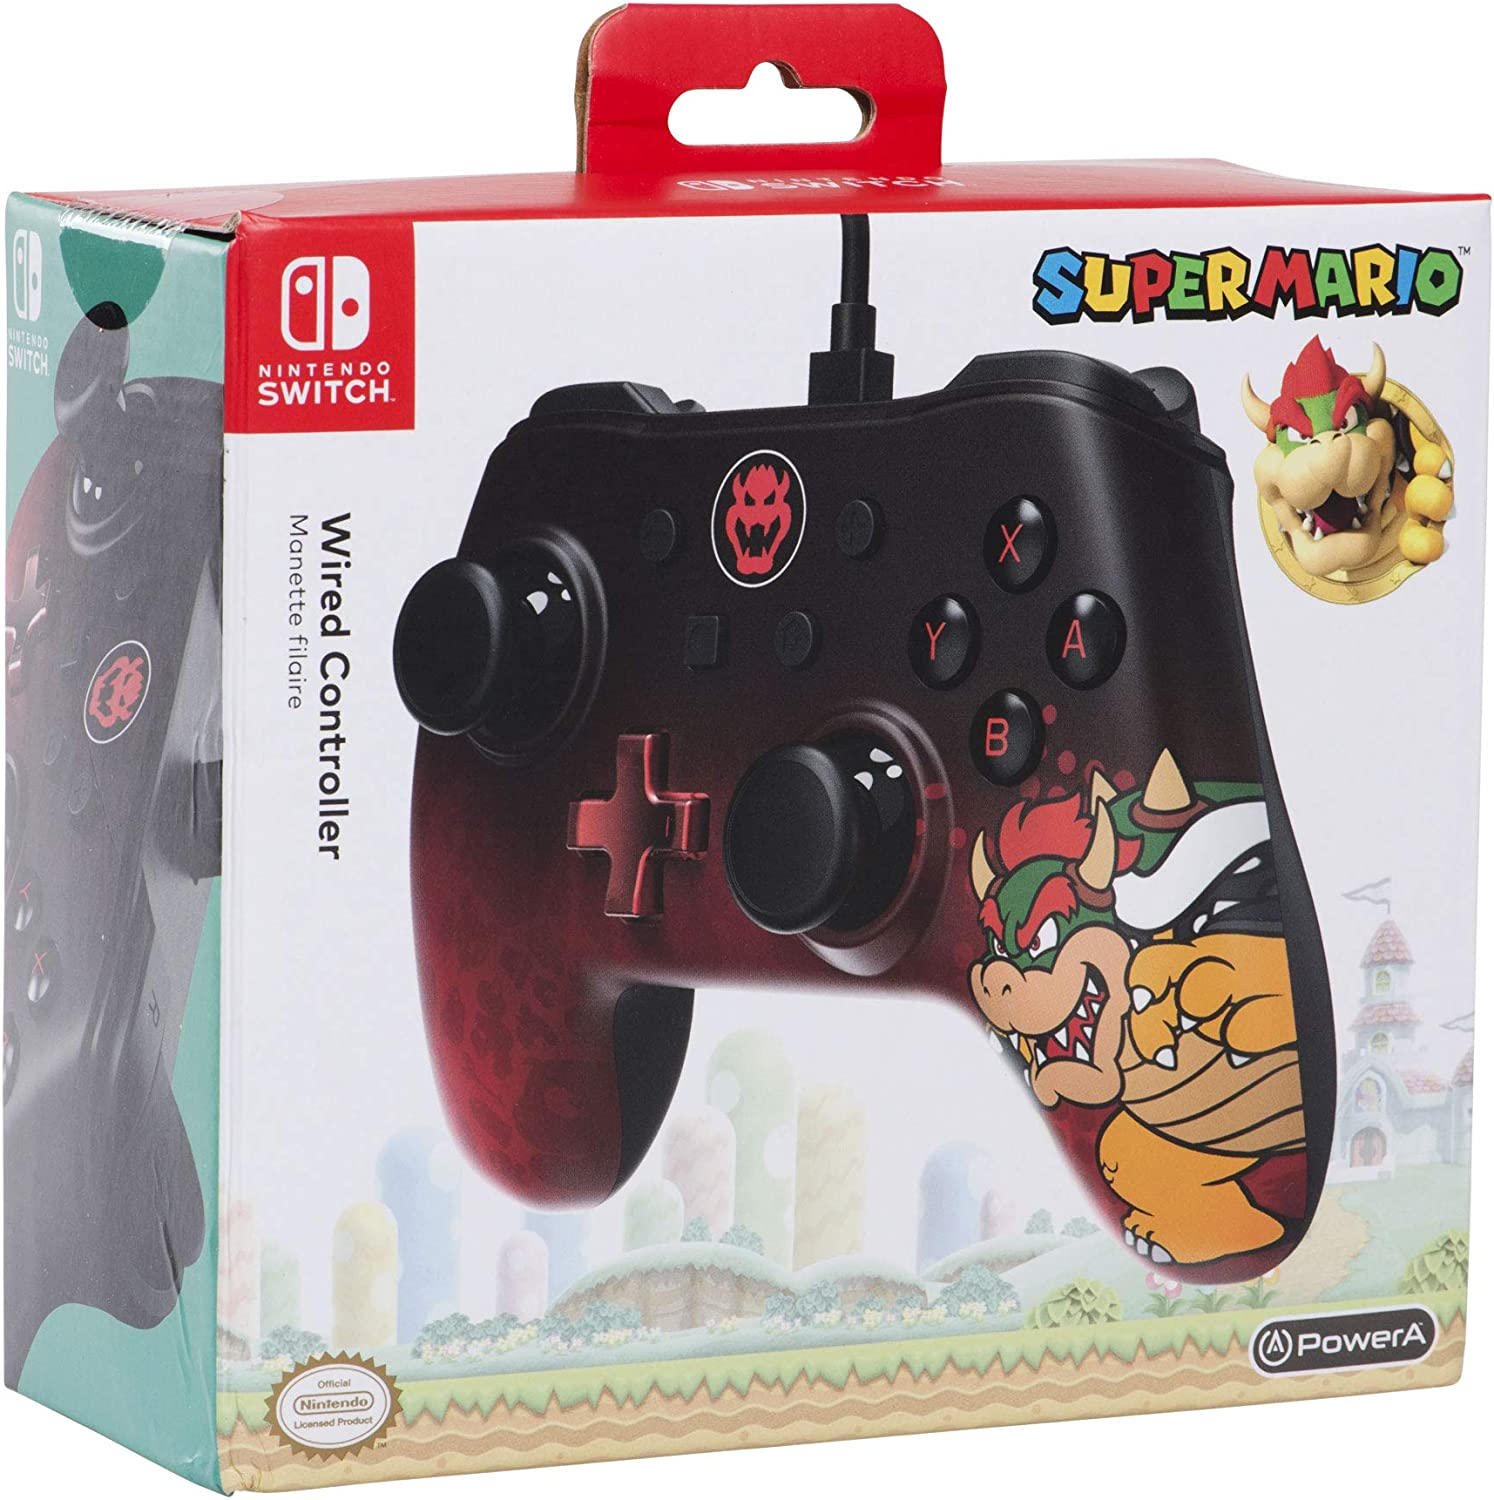 Mando con cable PowerA para Nintendo Switch Bowser: Amazon.es: Videojuegos